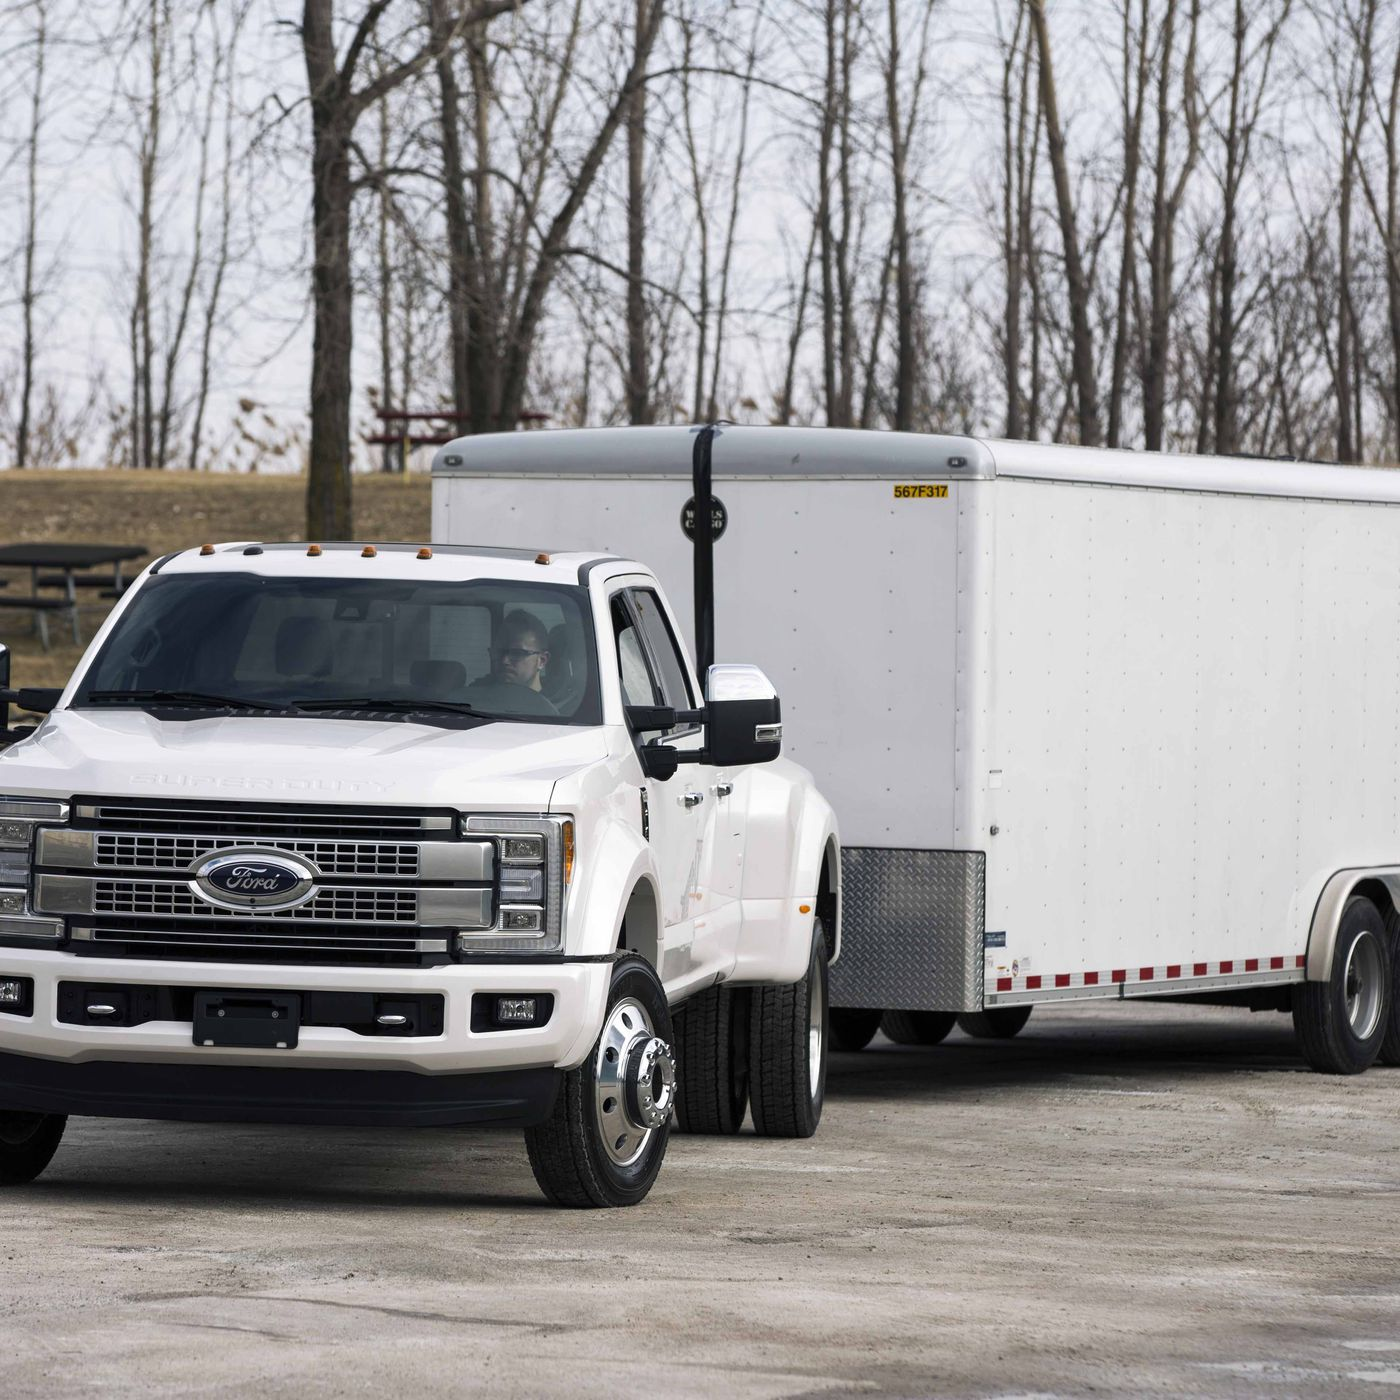 Ford Stuffed The New Super Duty Pickup Full Of Cameras To Make 2012 F250 Fifth Wheel Trailer Plug Backing A Easier Verge